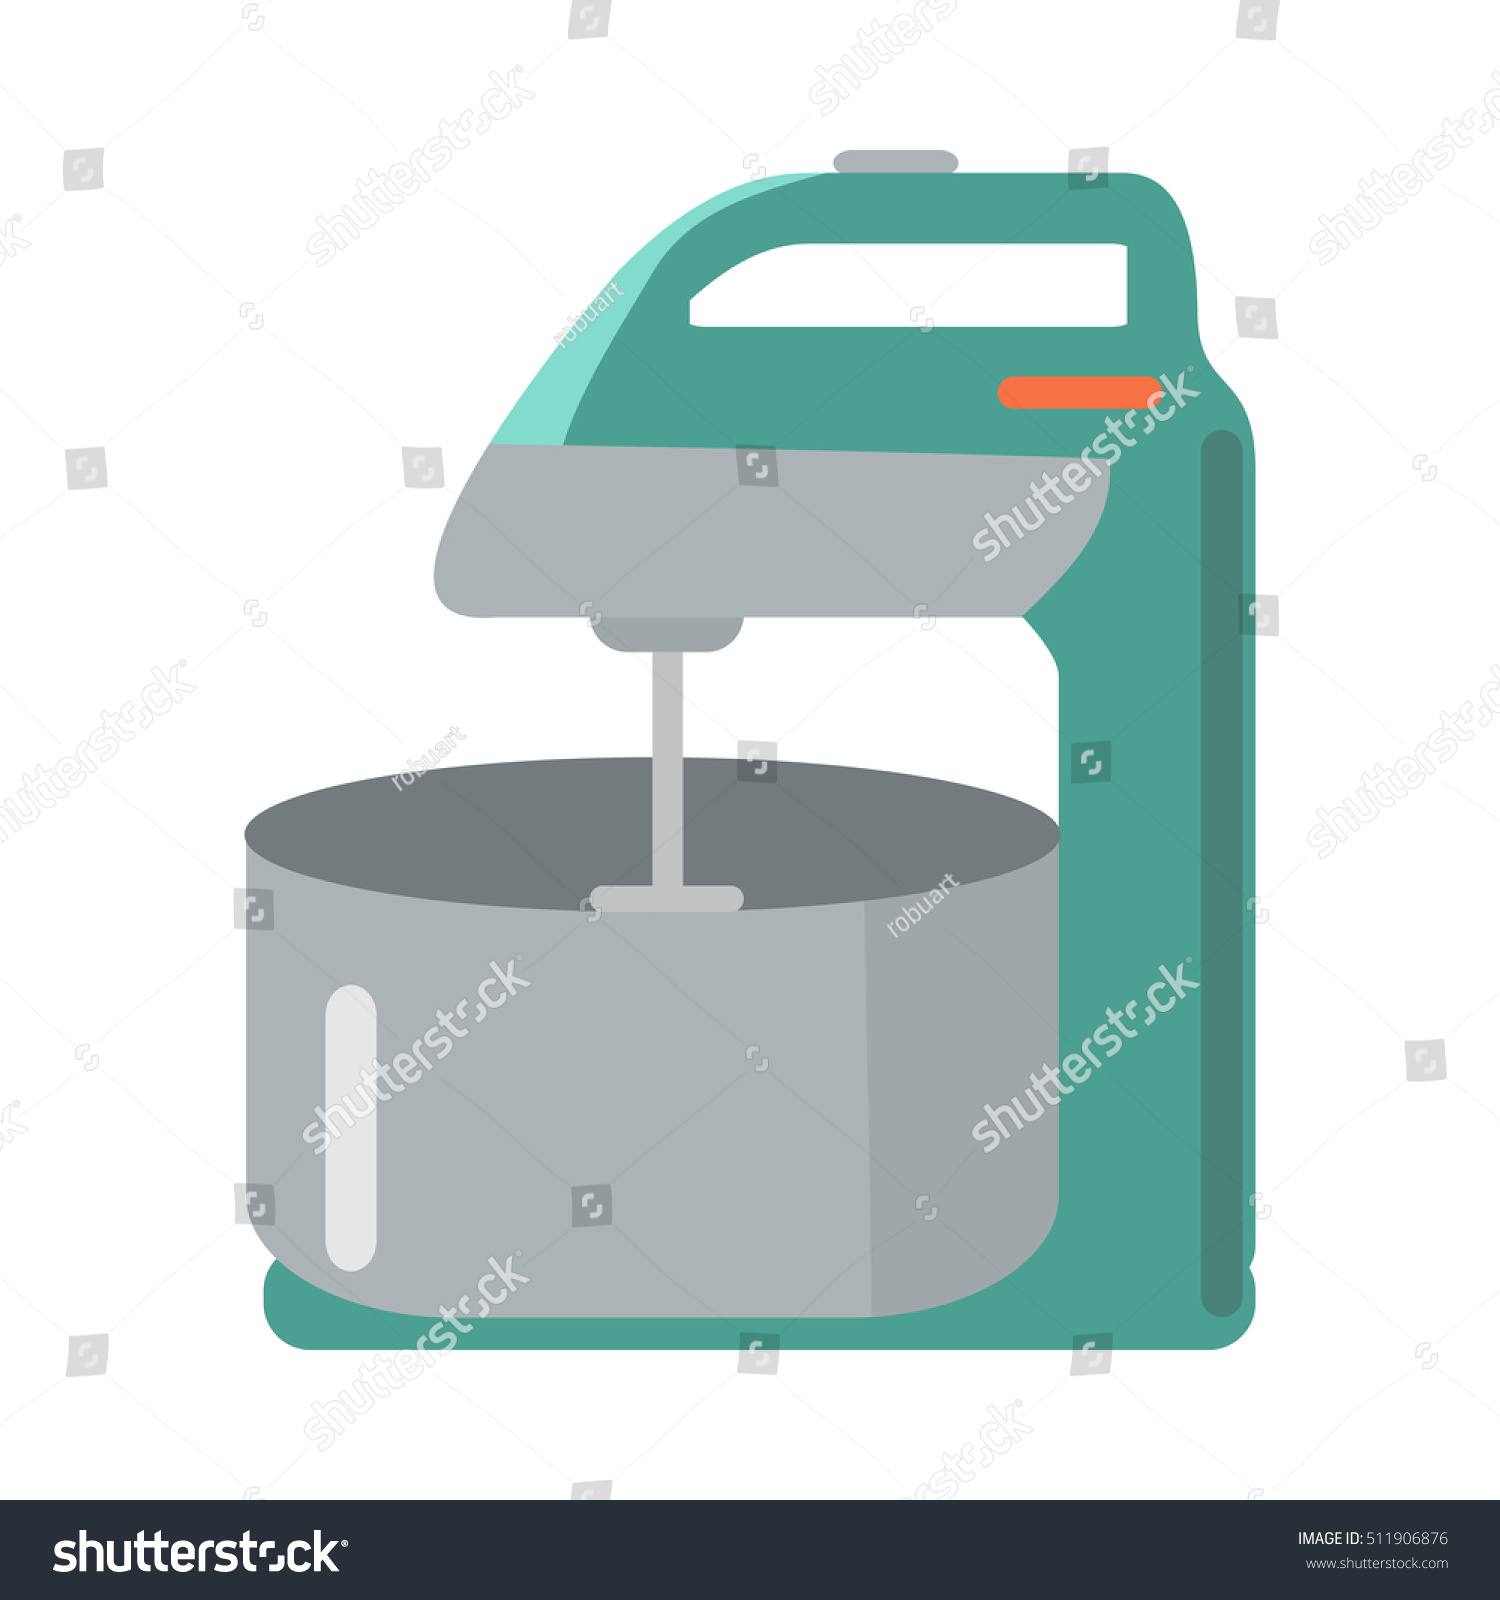 Mixer Bowl Flat Style Isolated Household Stock Vector 511906876 ...